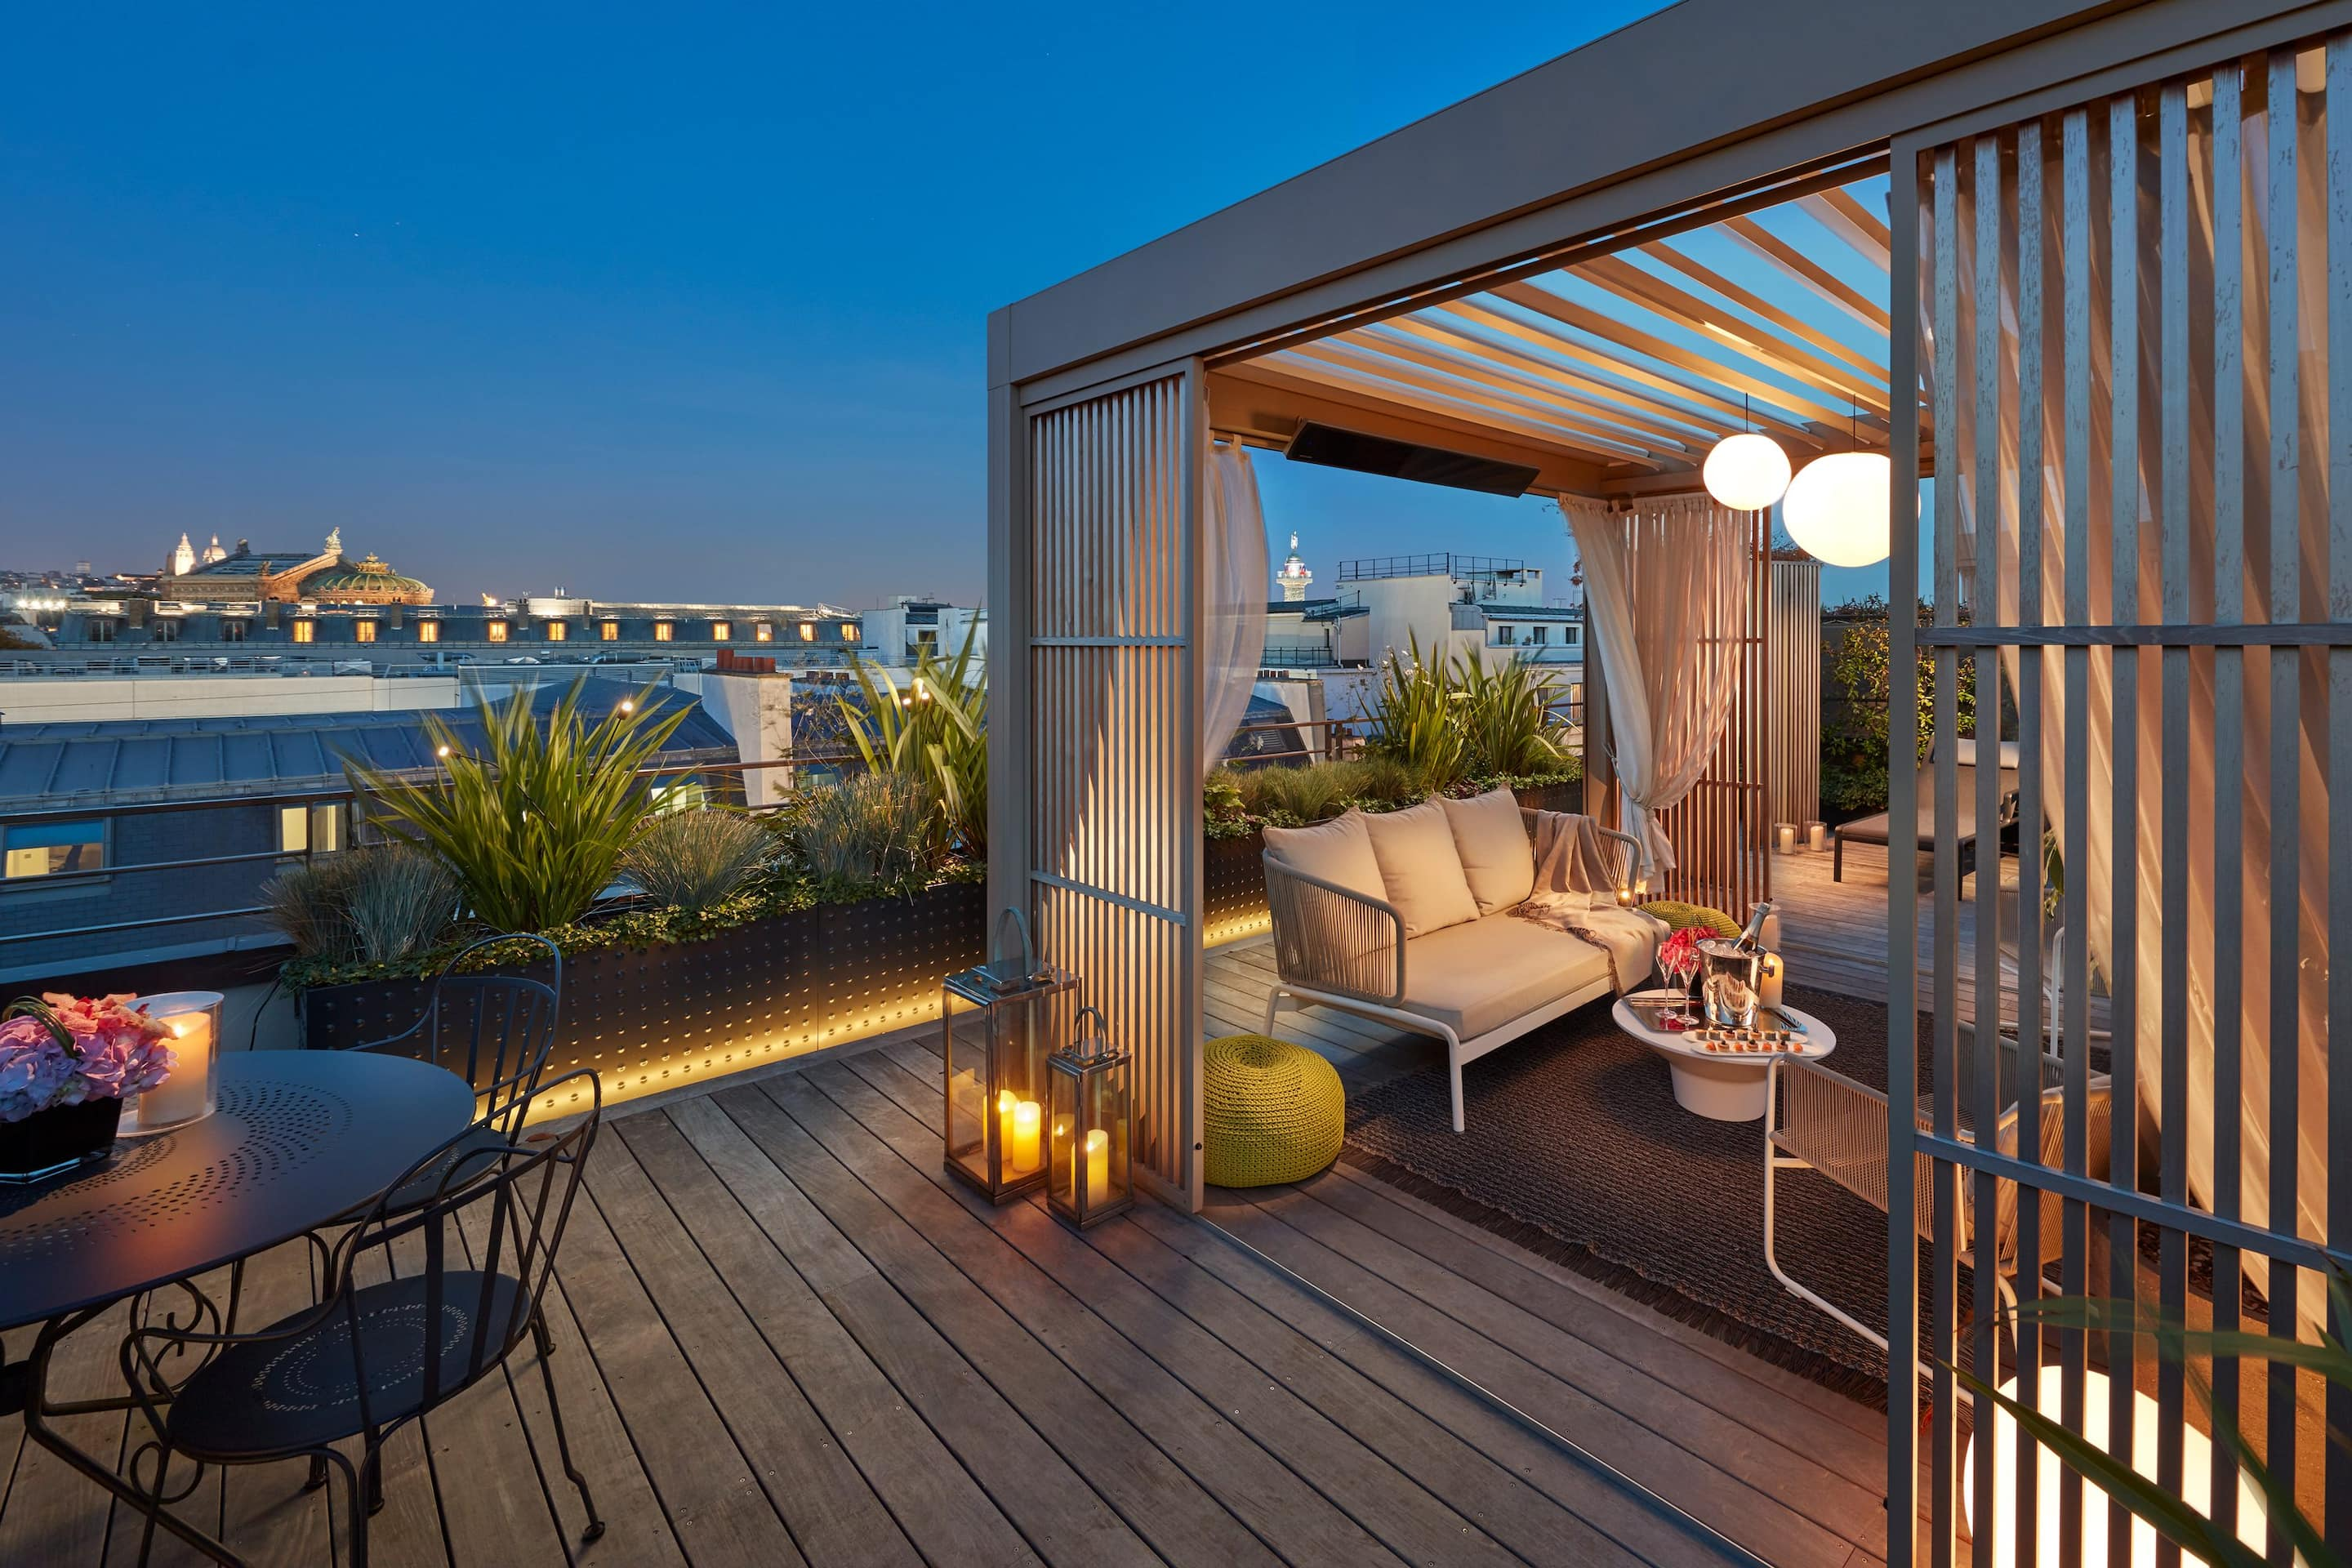 Rooftop views from the terrace of the Mandarin Penthouse Floor, Paris